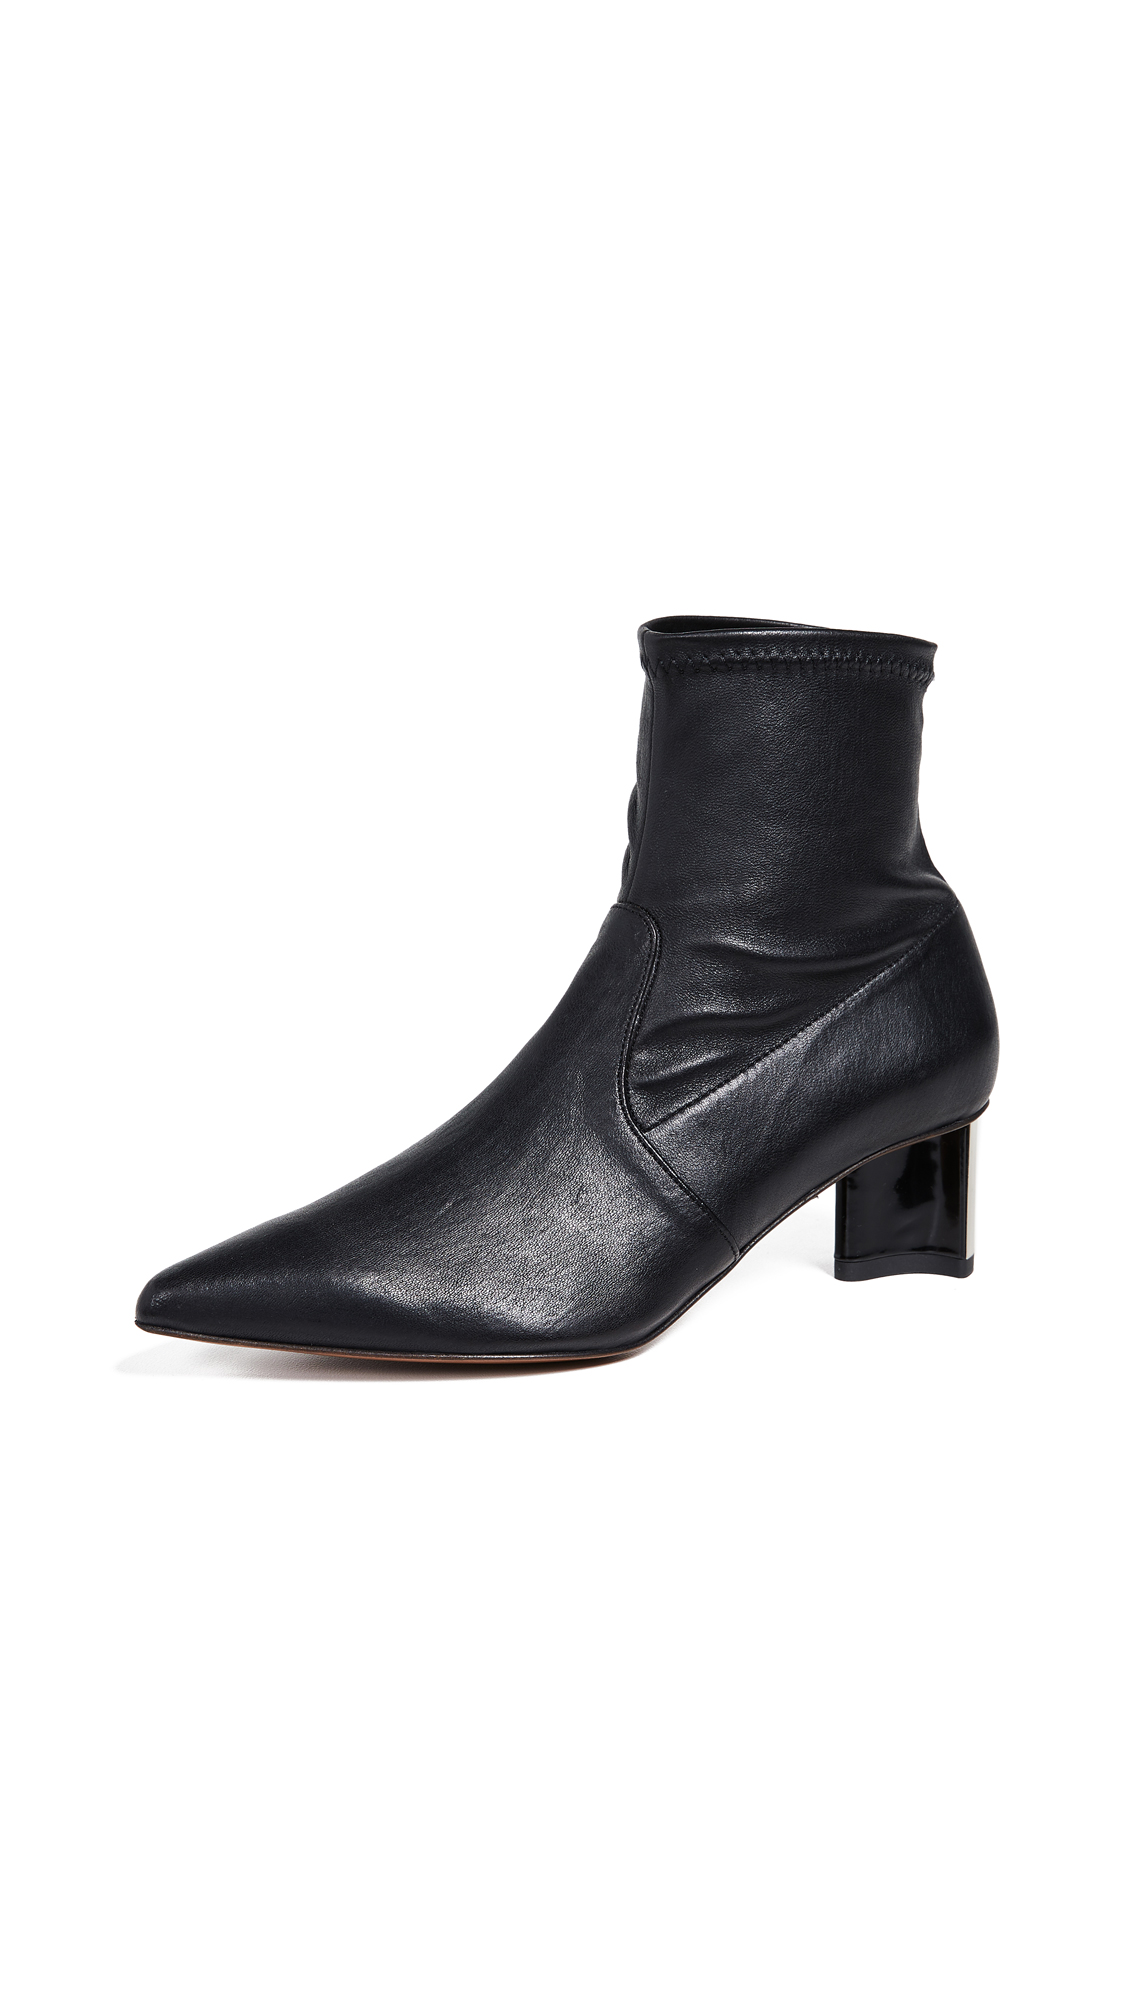 Robert Clergerie Serenaa Booties - Black